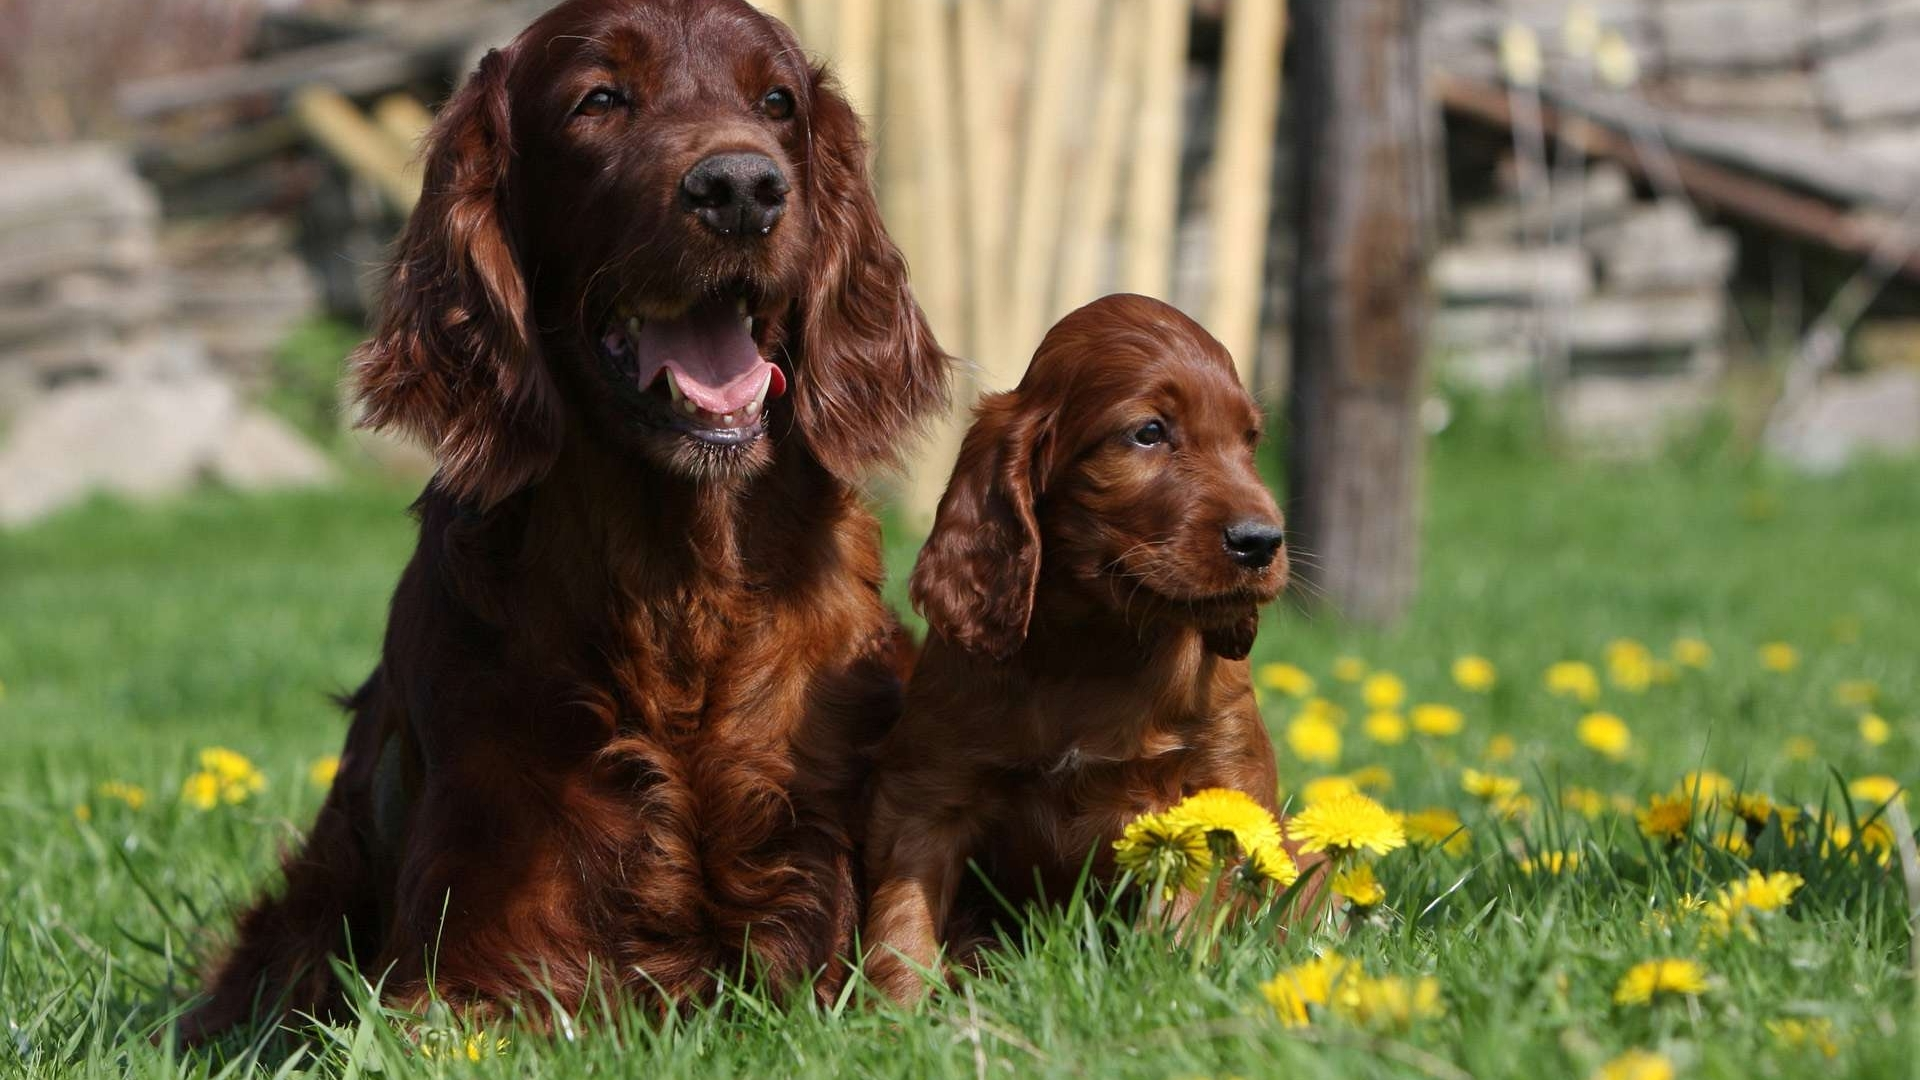 irish setters wallpaper download - photo #15